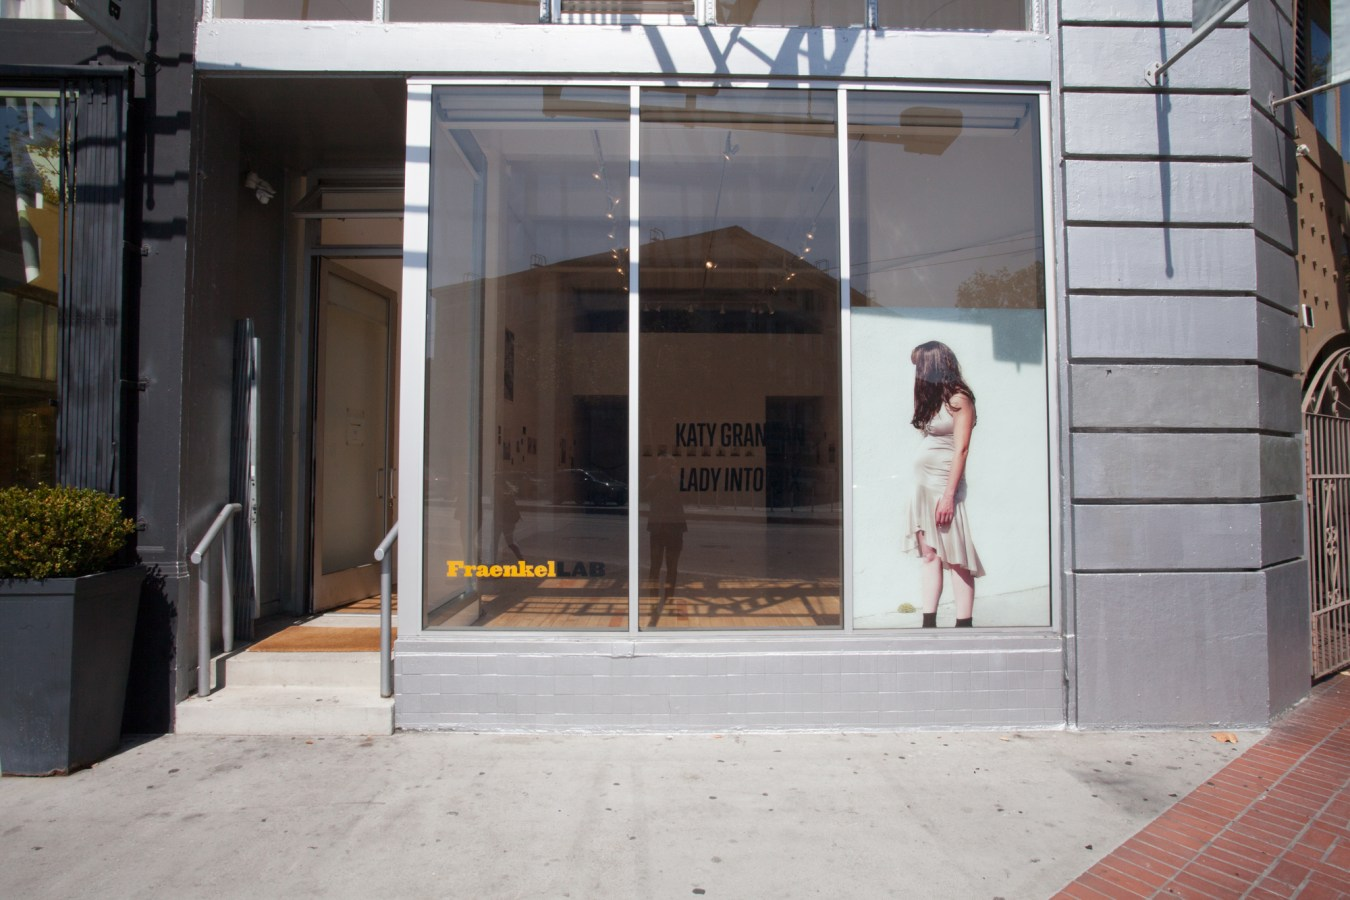 Installation photograph of a gallery storefront